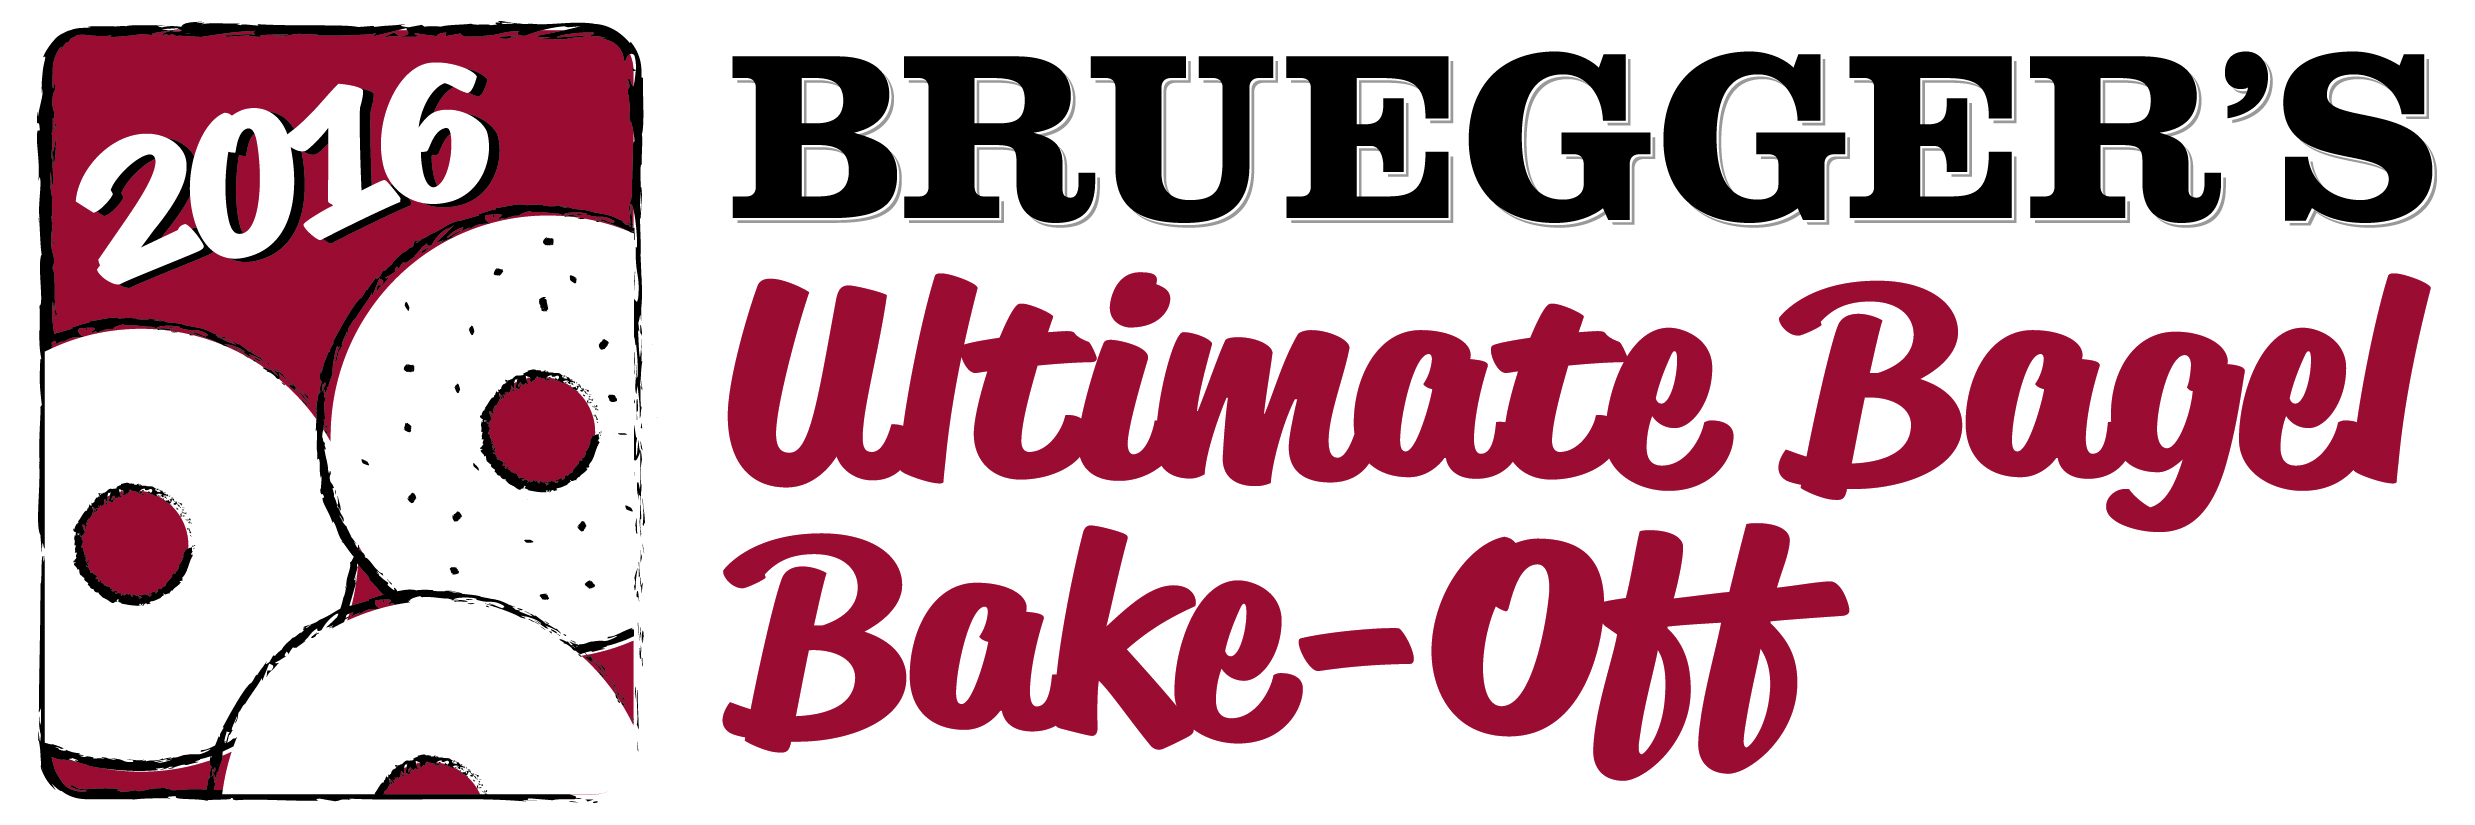 2016 Bruegger's Bagel's Ultimate Bagel Bake-Off